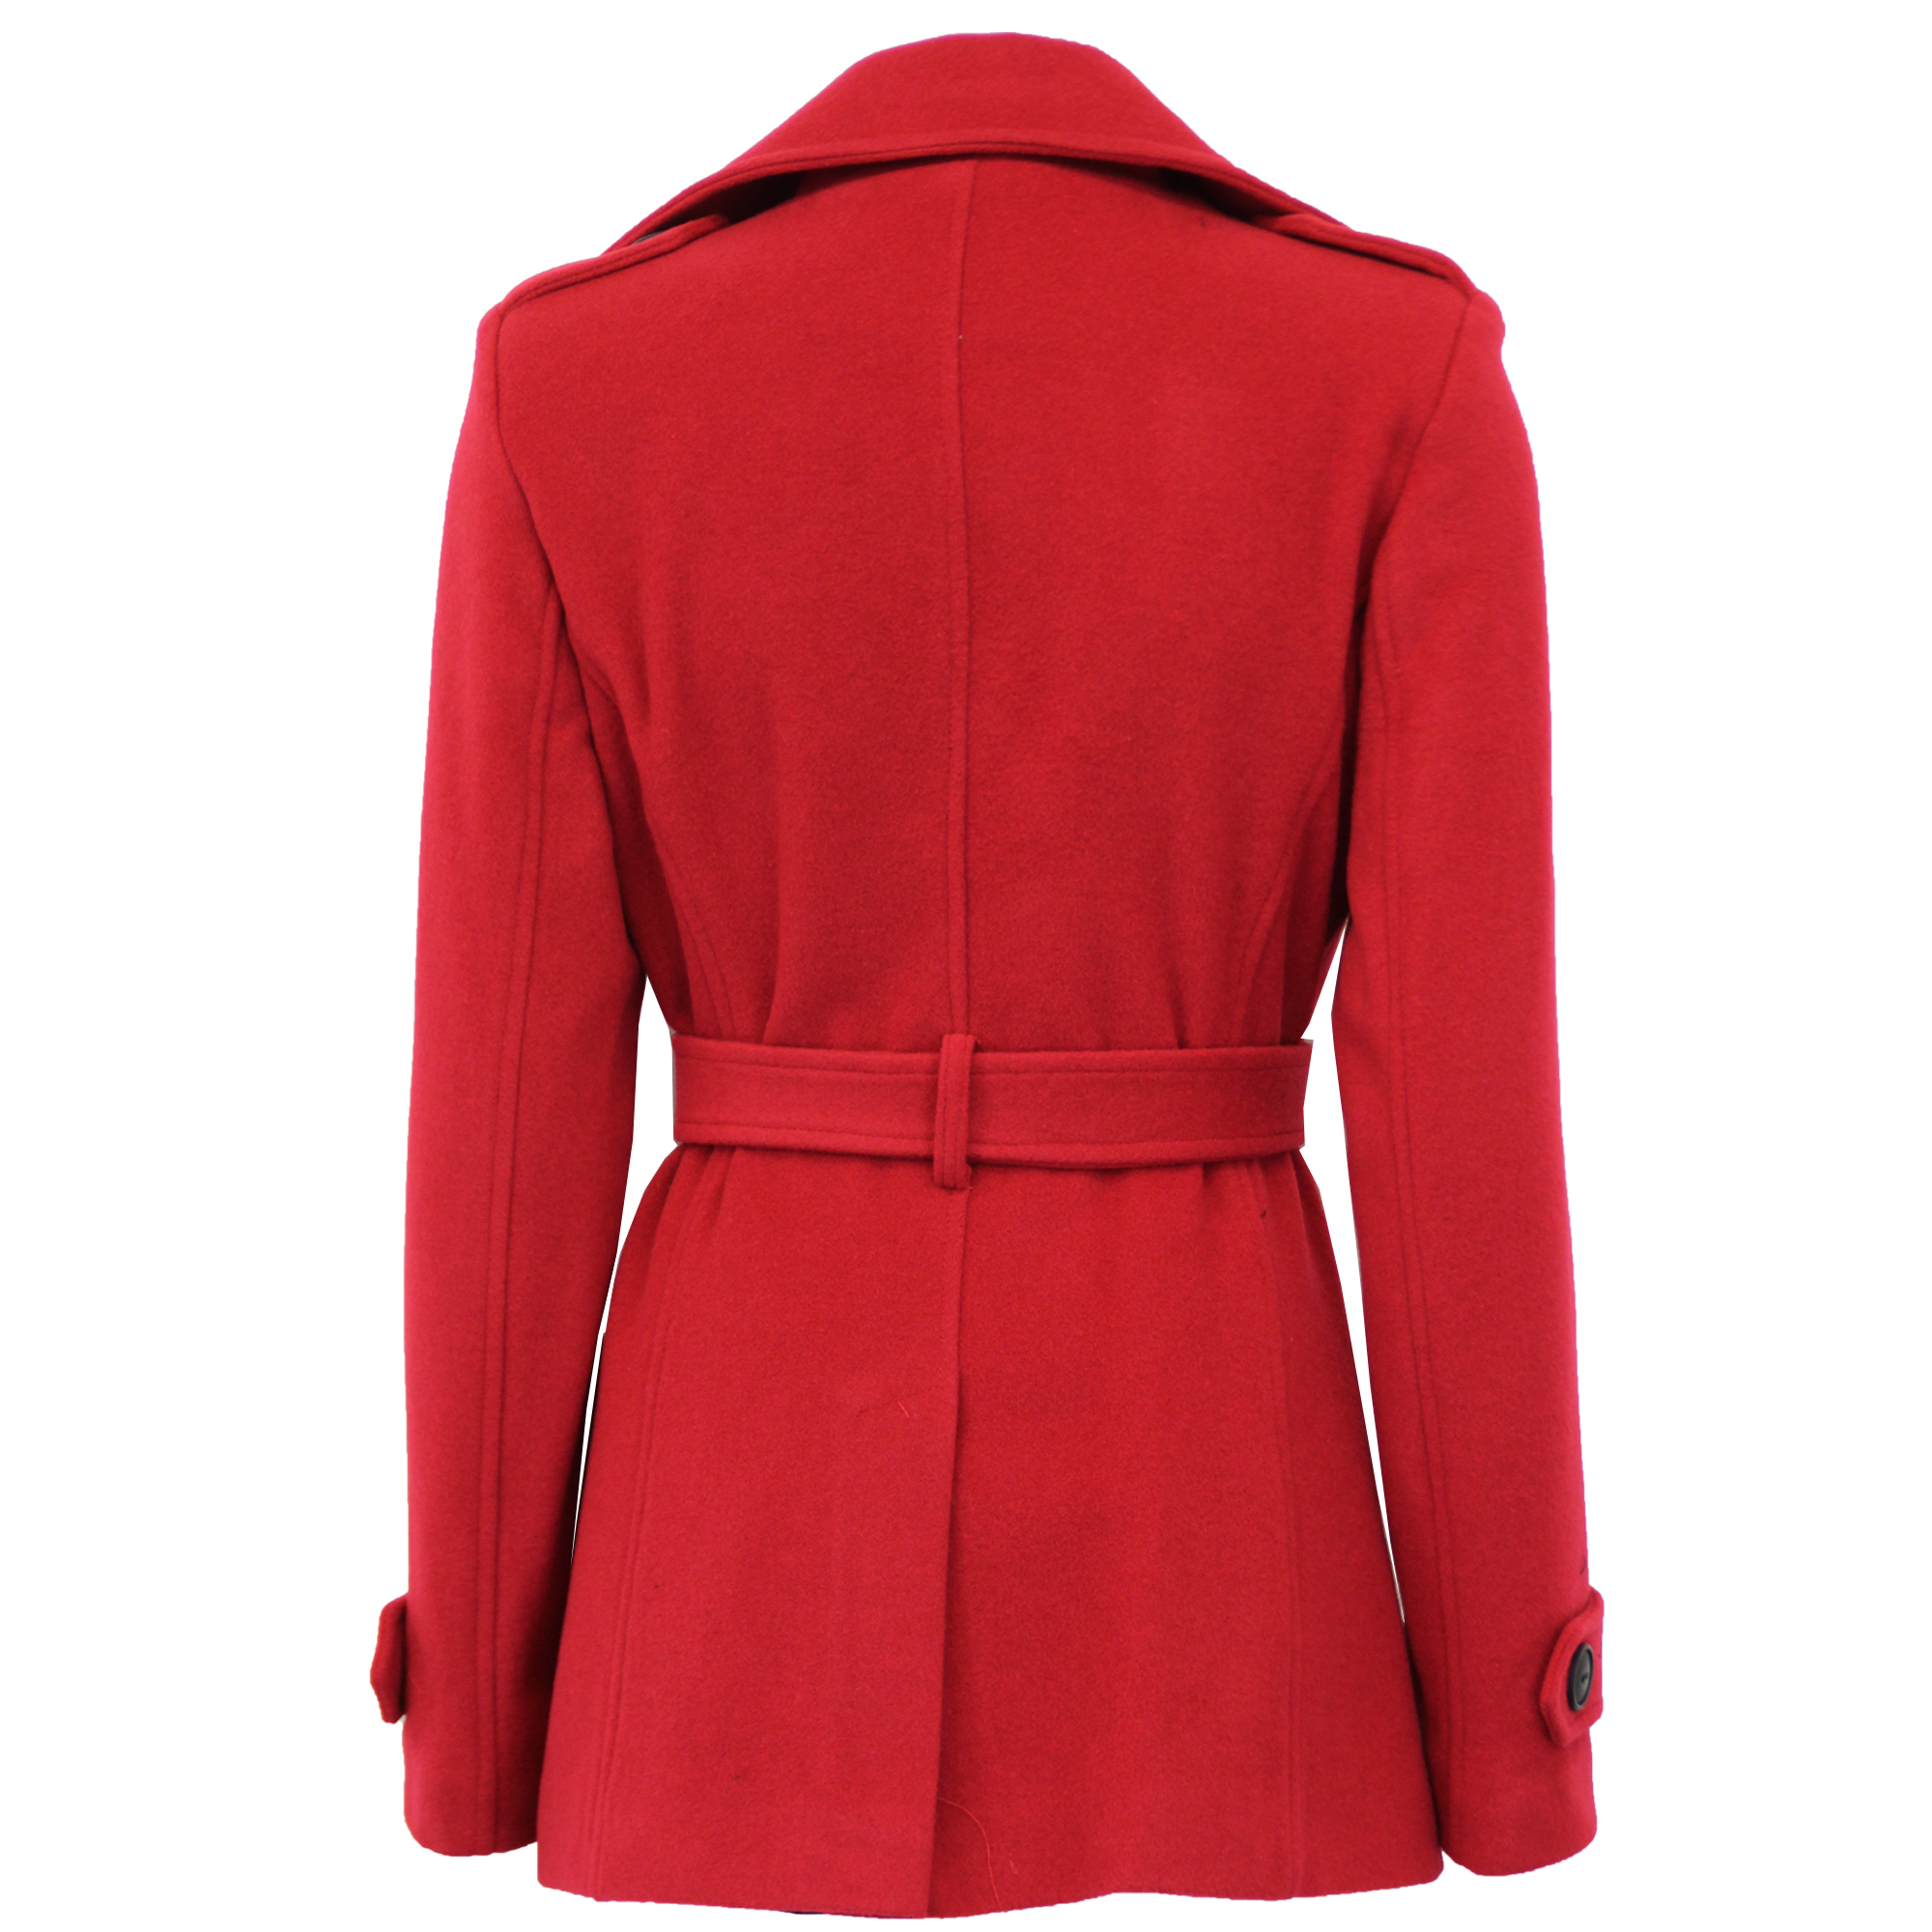 Ladies-Wool-Cashmere-Coat-Womens-Jacket-Double-Breasted-Belt-Checked-Trench-New thumbnail 18